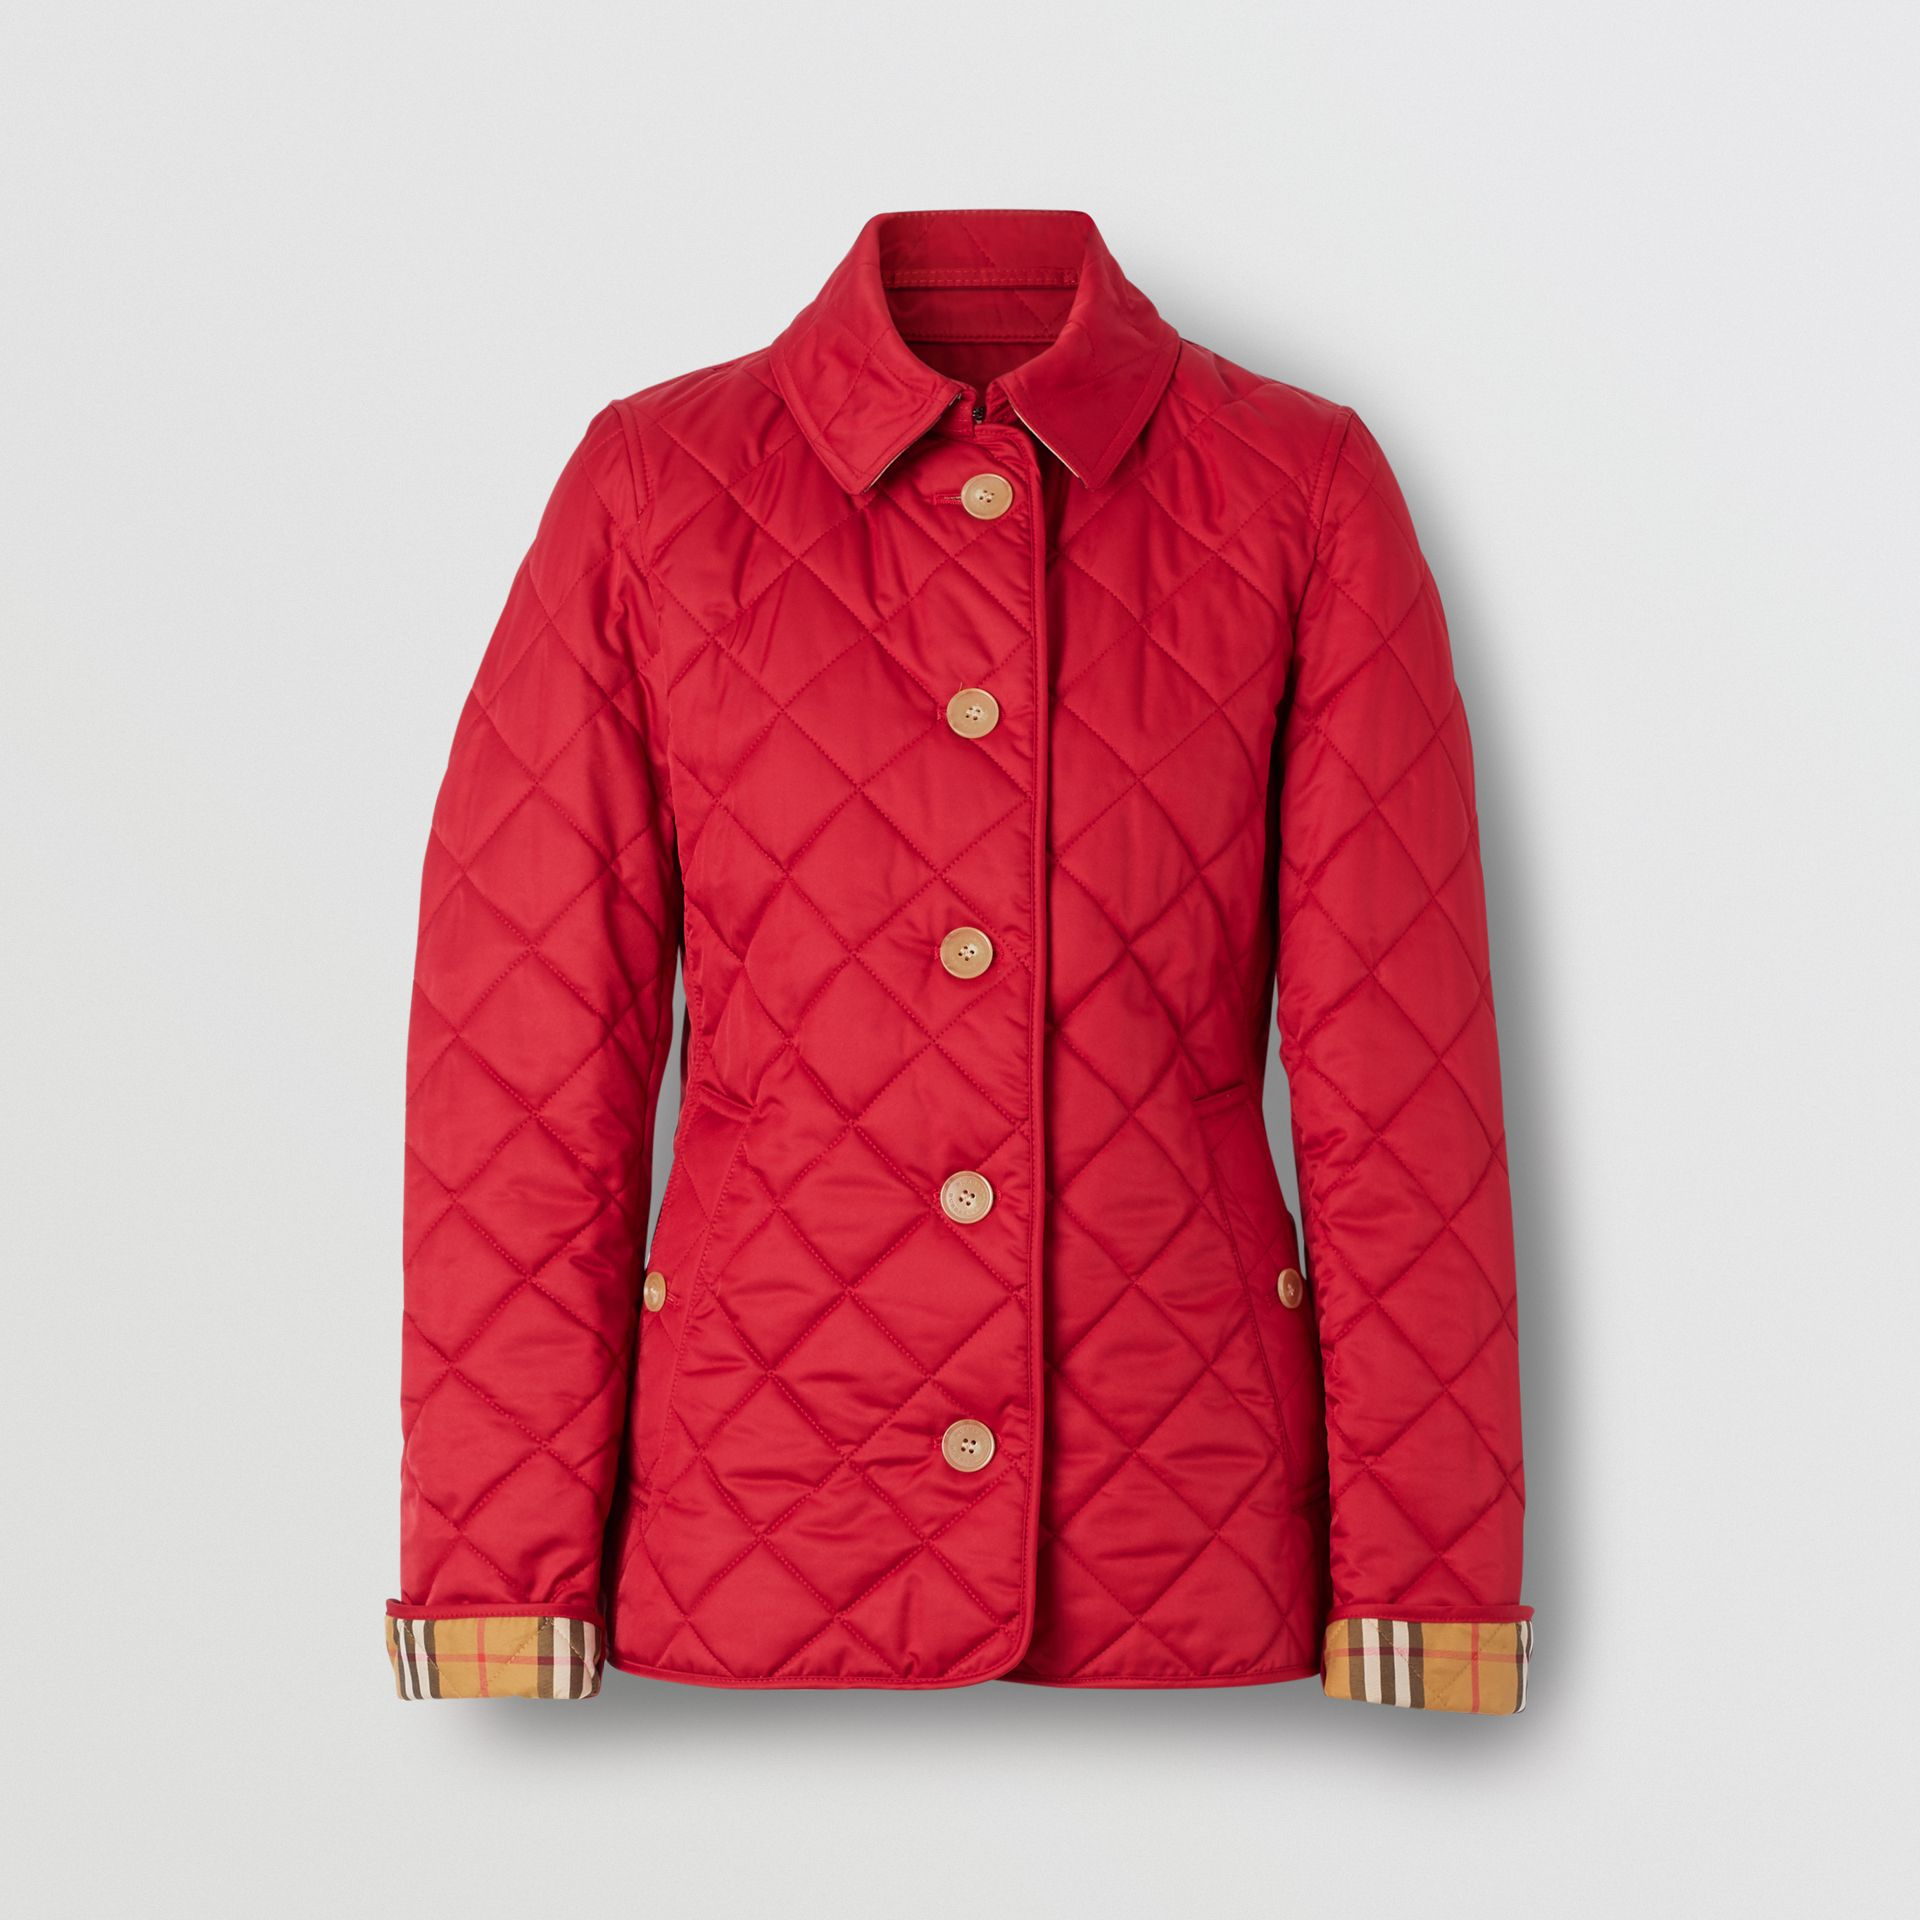 Diamond Quilted Jacket in Military Red - Women | Burberry - gallery image 3